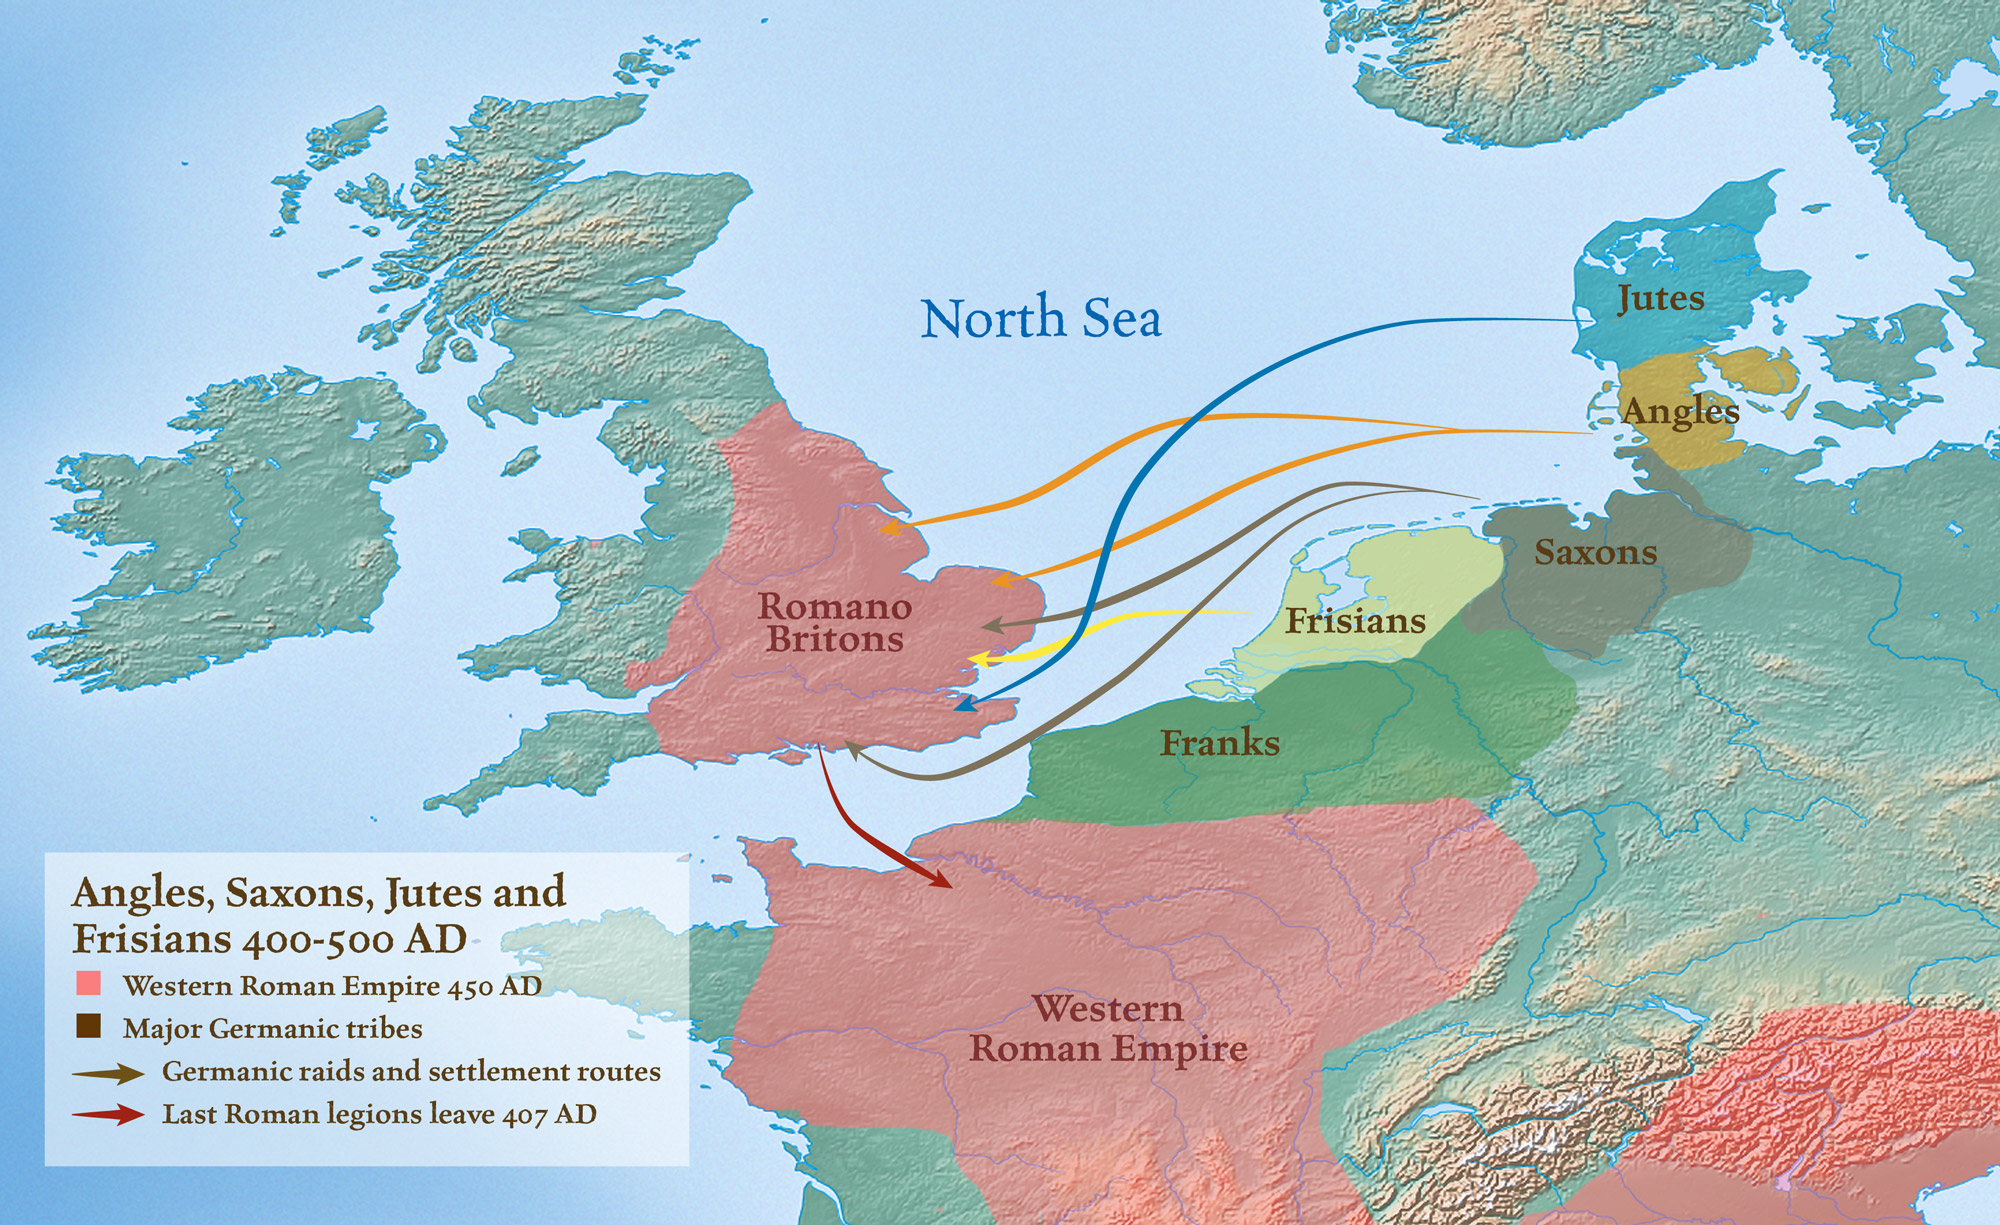 a comparison of the celtic tribes and the saxons in 5th century europe Celtic, anglo-saxon and romanesque iconography1 (until late 5th century) vandals and lombards also swept down from northern europe, and angles and saxons went 2.